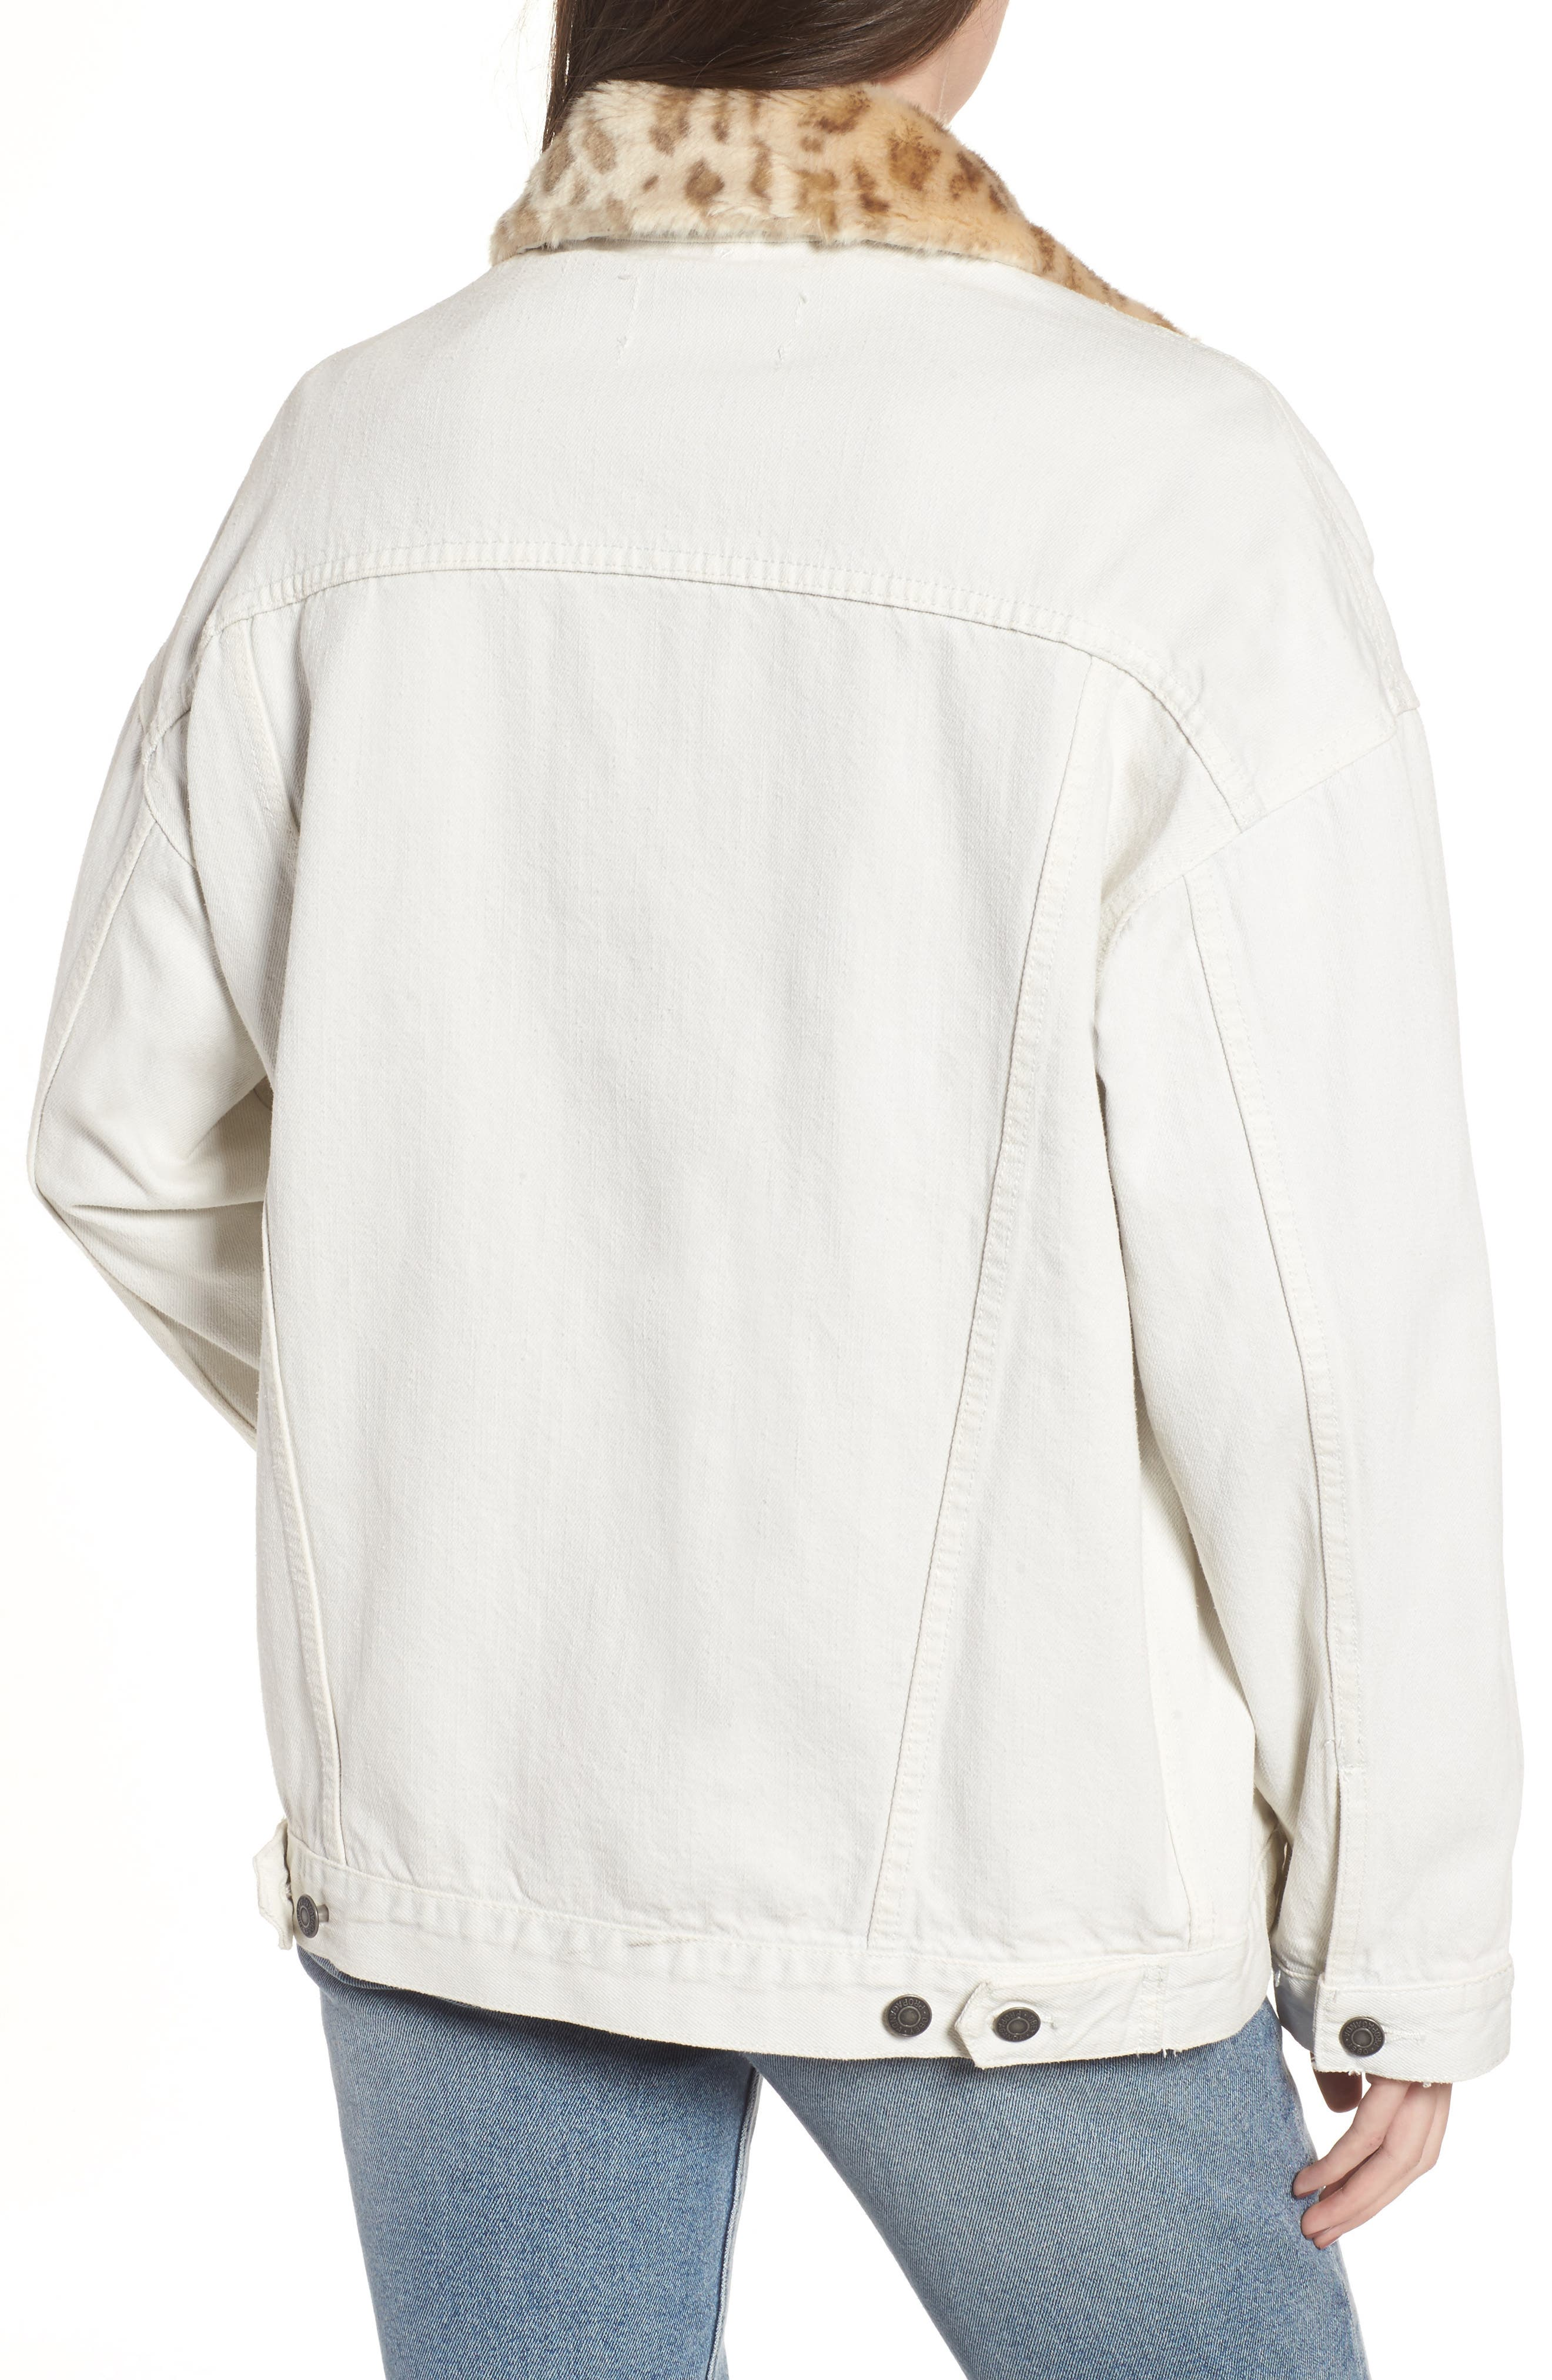 Alternate Image 2  - Obey Wily Rider Jacket with Removable Faux Fur Collar